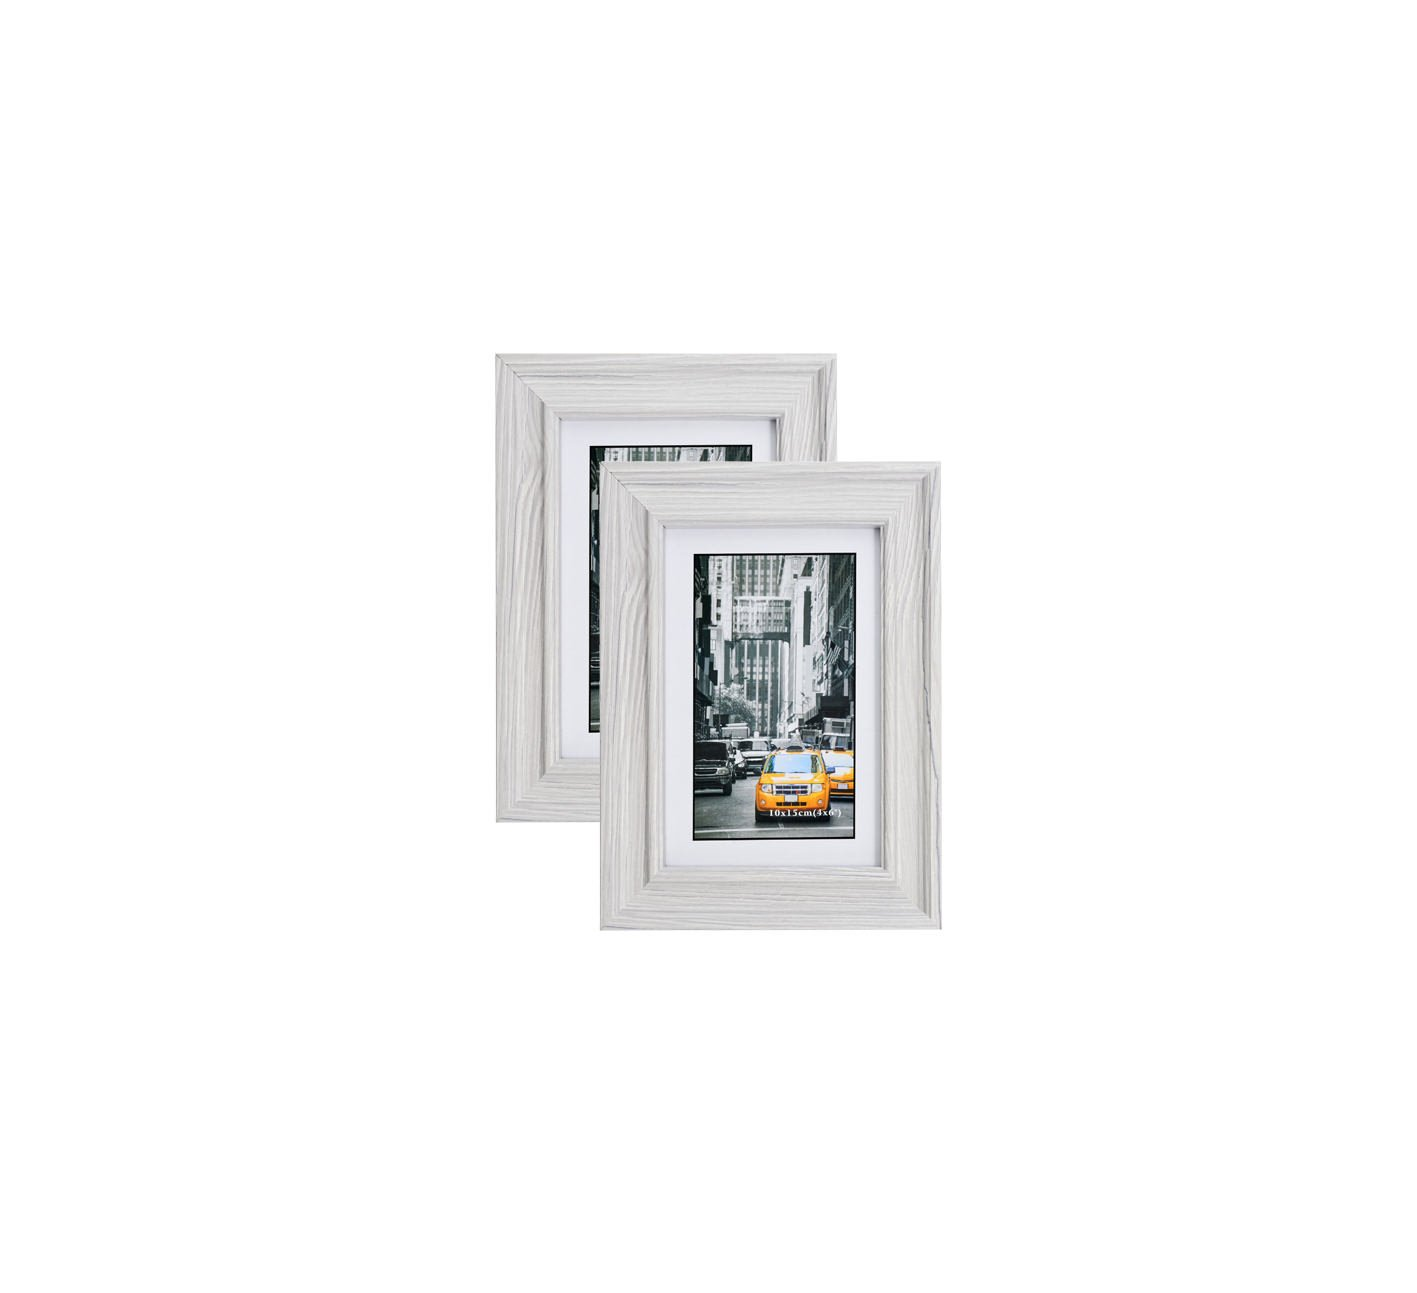 Marble Gray Wood Picture Frame 4X6 (2pc) Photo Display with Glass Front, Easel Back, Hanging Clip | 2 PIECE SET